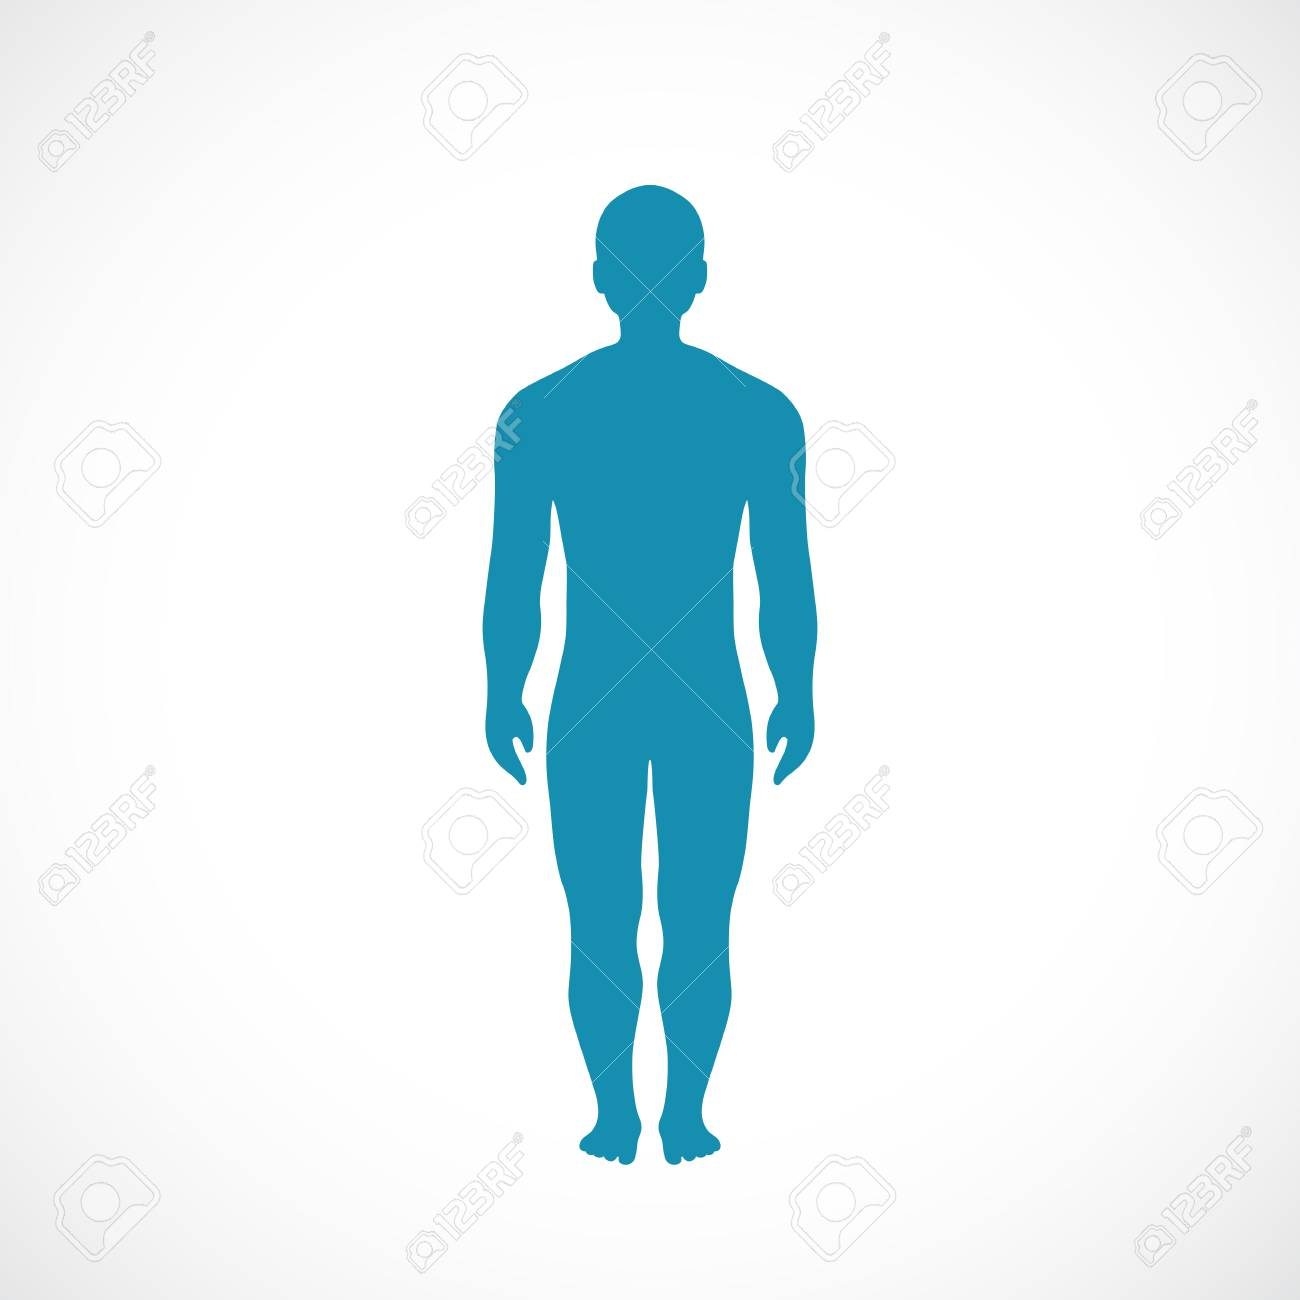 Human Body Silhouette Vector Icon Royalty Free Cliparts Vectors And Stock Illustration Image 104221598